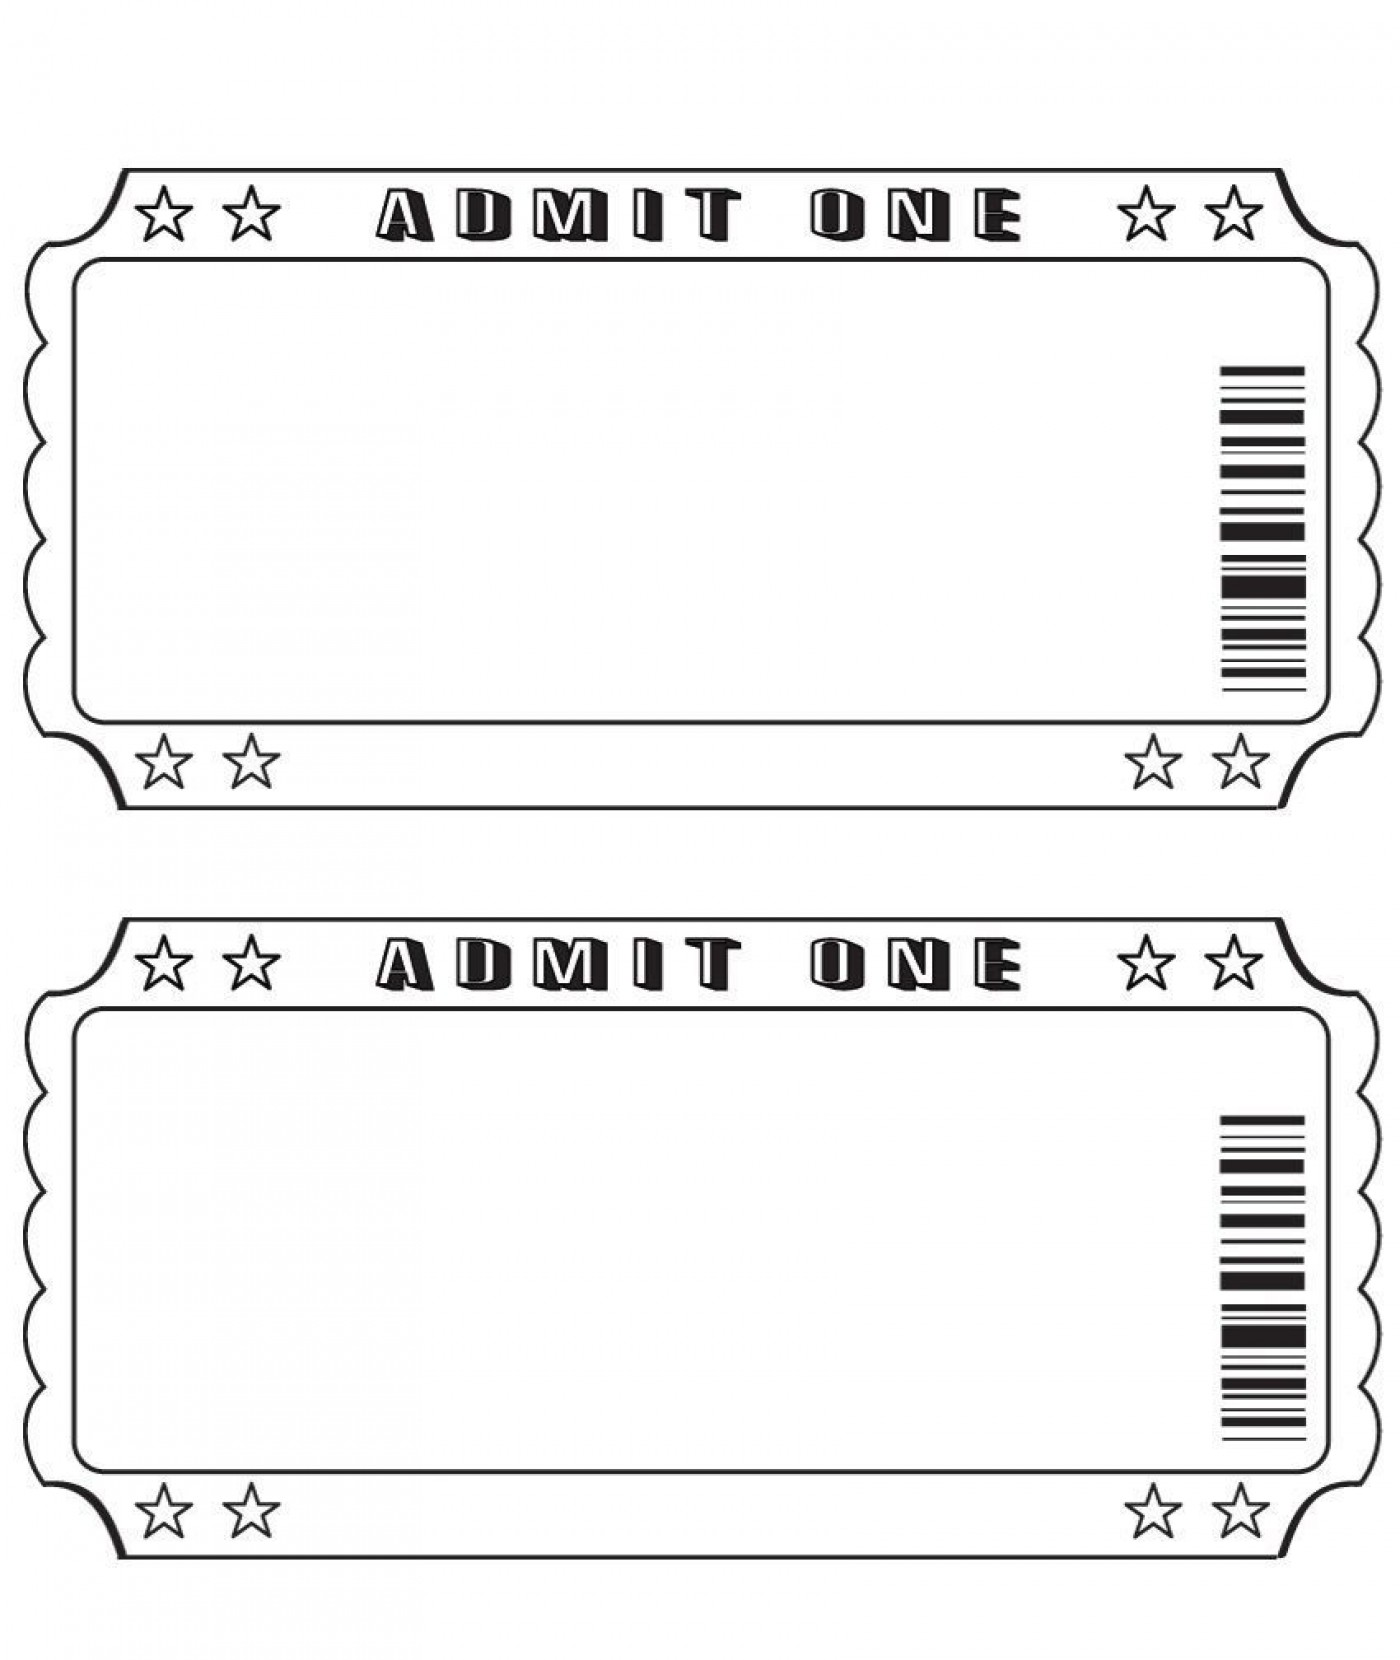 003 Shocking Free Printable Ticket Template Highest Quality  Editable Airline Christma For Gift1400